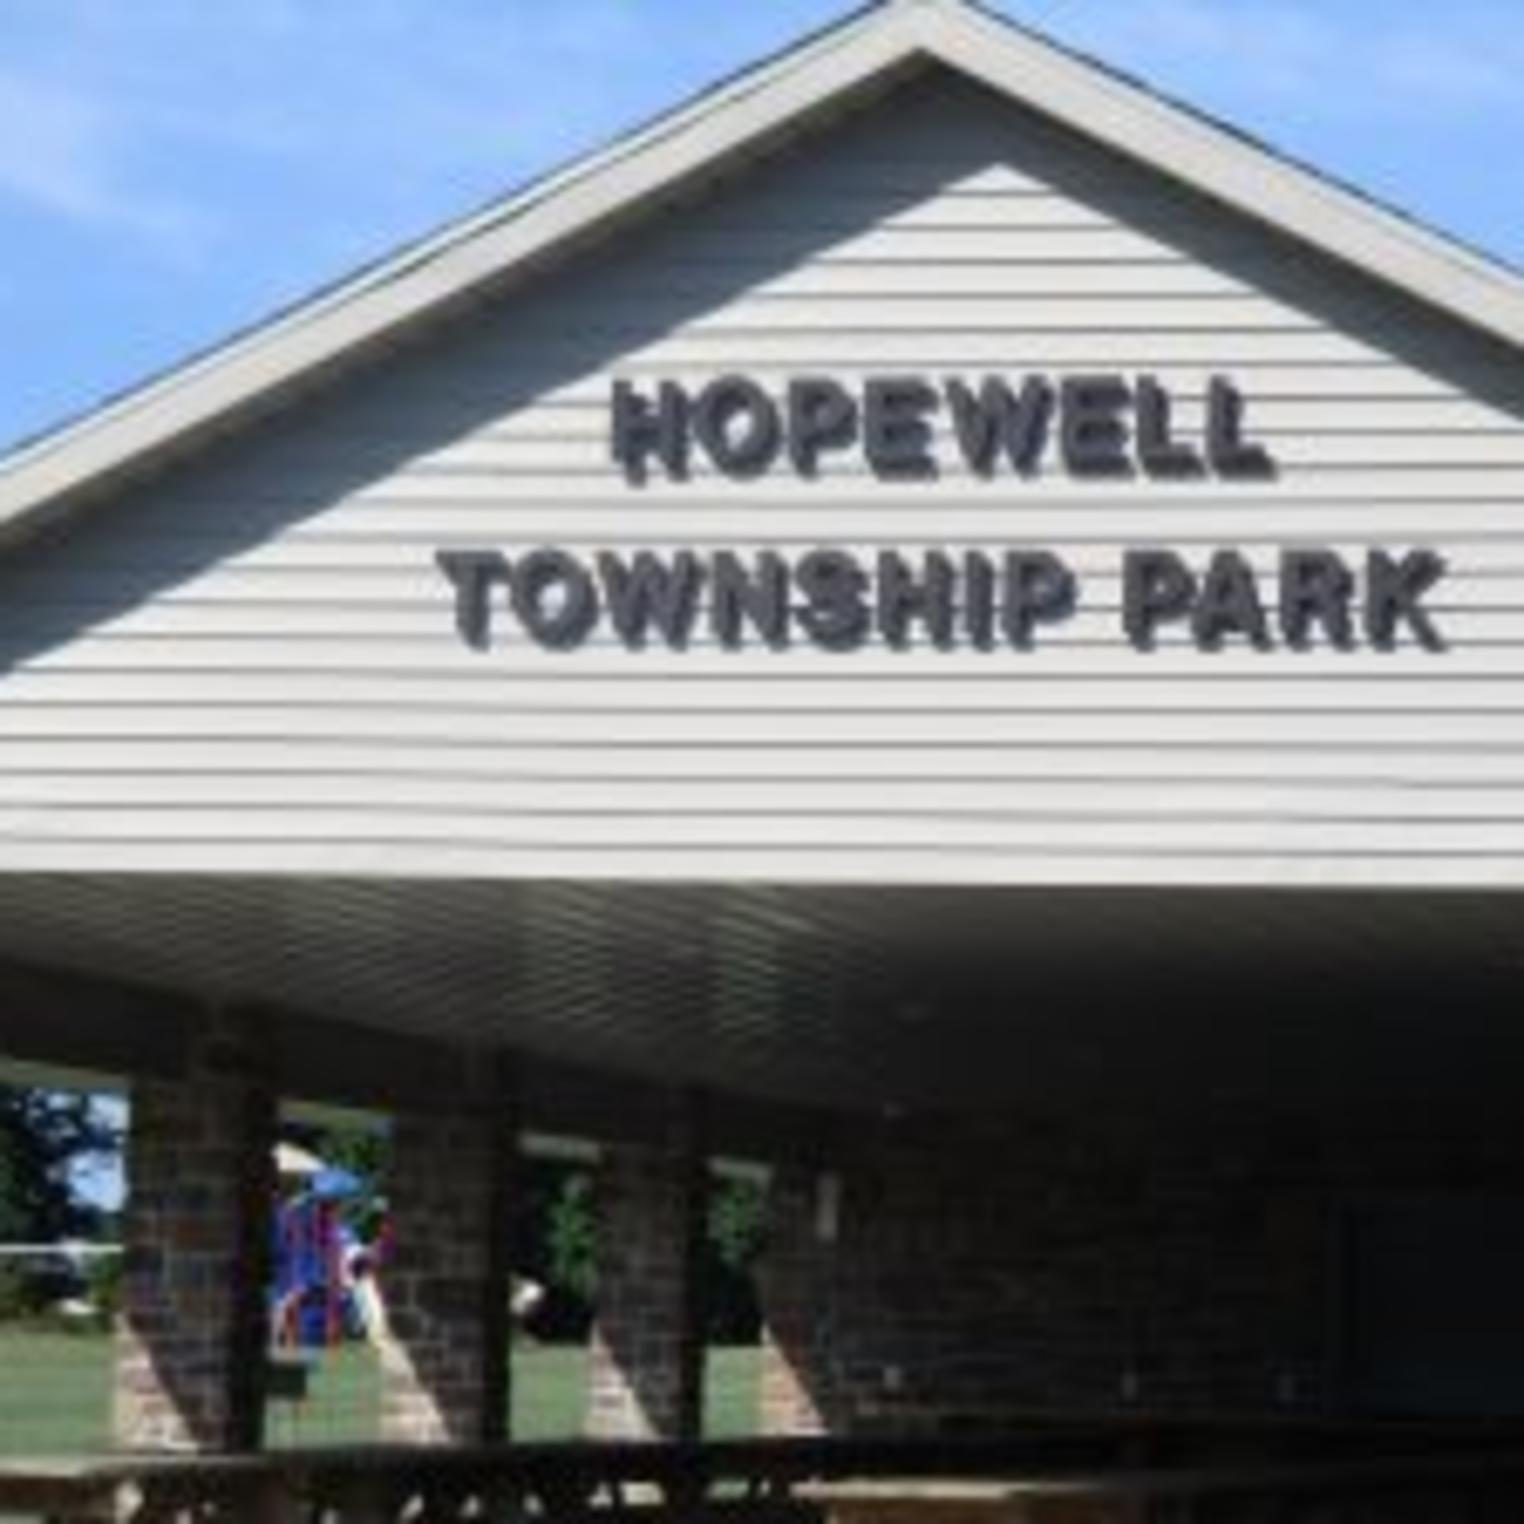 Hopewell Township Park